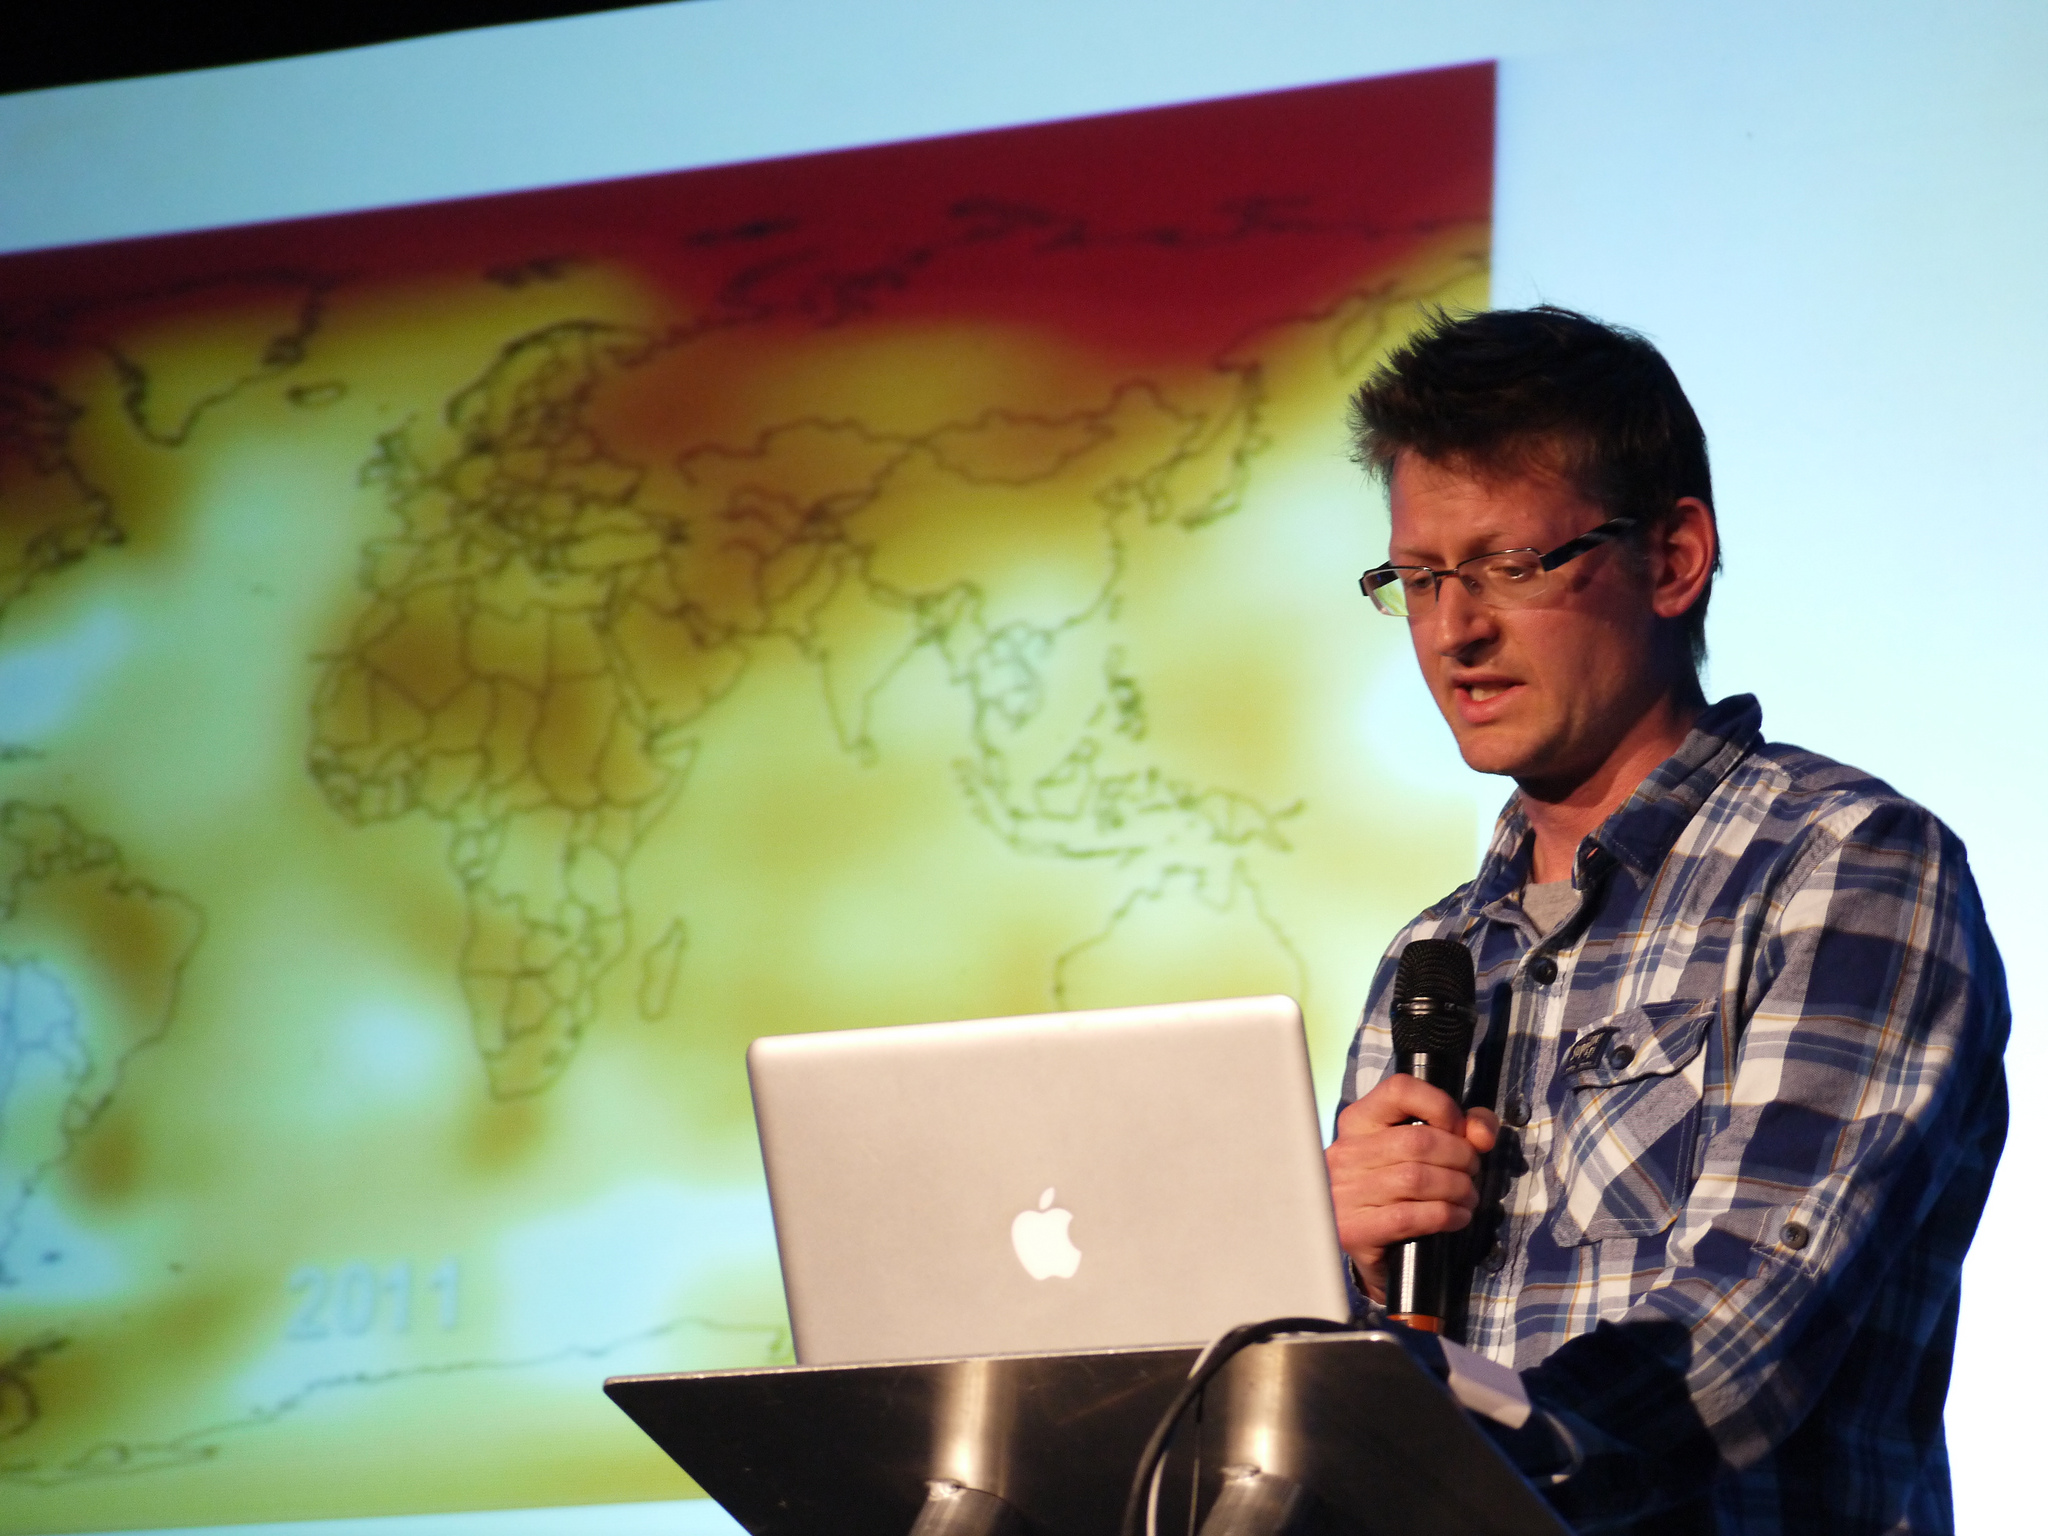 Mark Lynas presenting at the 2013 QED conference in 2013. Credit: Flickr user zooterkin. A new APPC study shows conversion messages can influence public attitudes toward genetically modified (GM) foods.